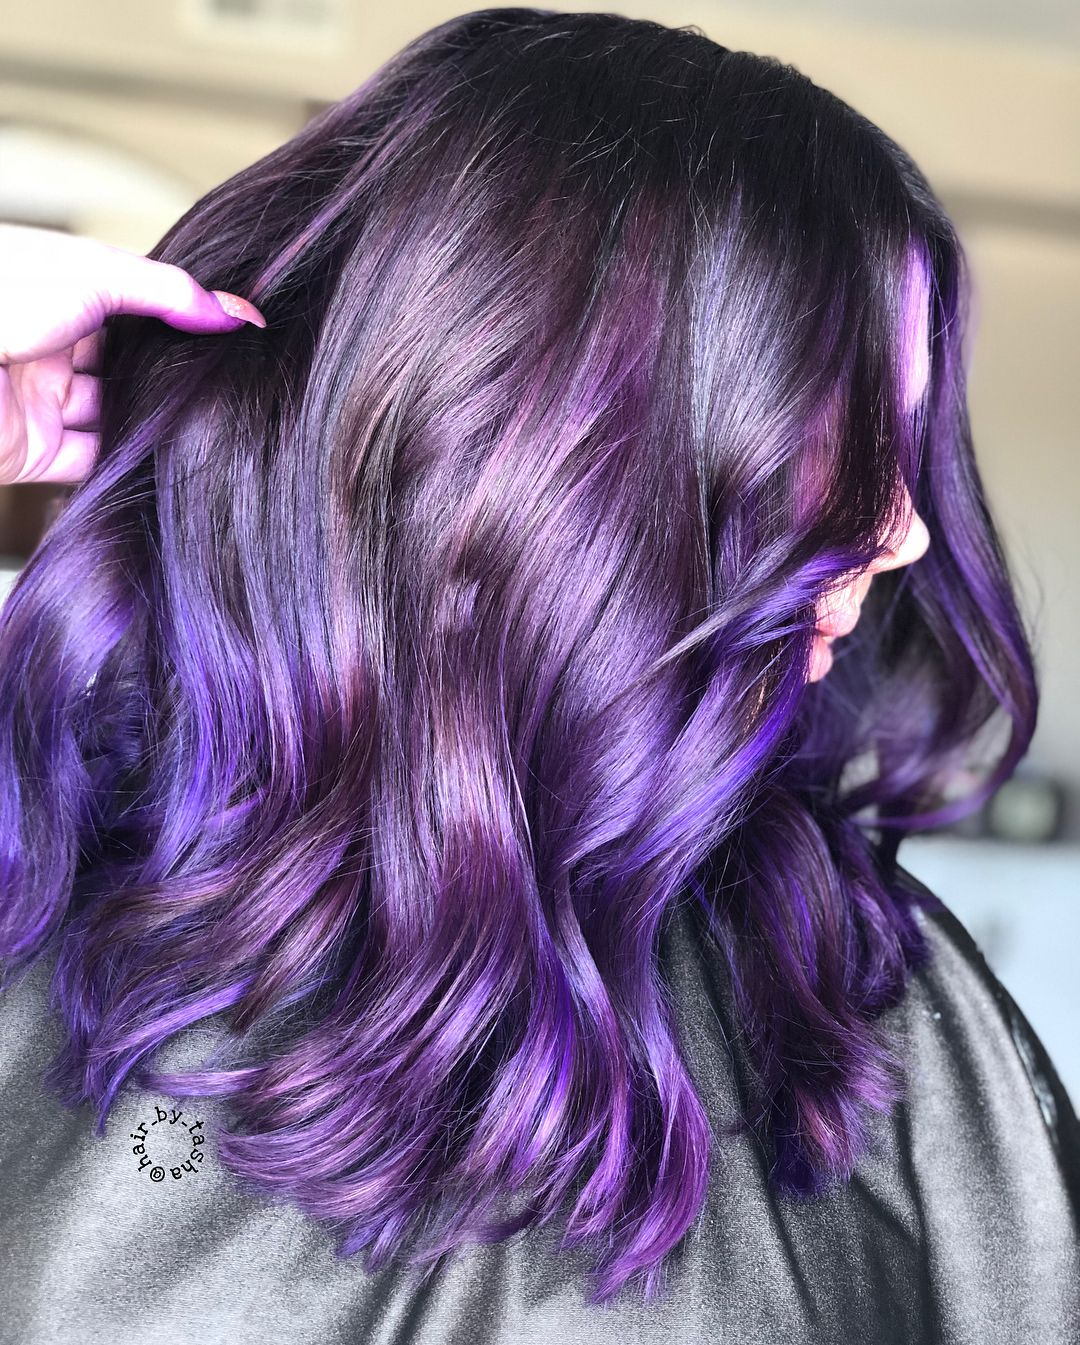 purple hair, unique hair color ideas, purple balayage, hair color